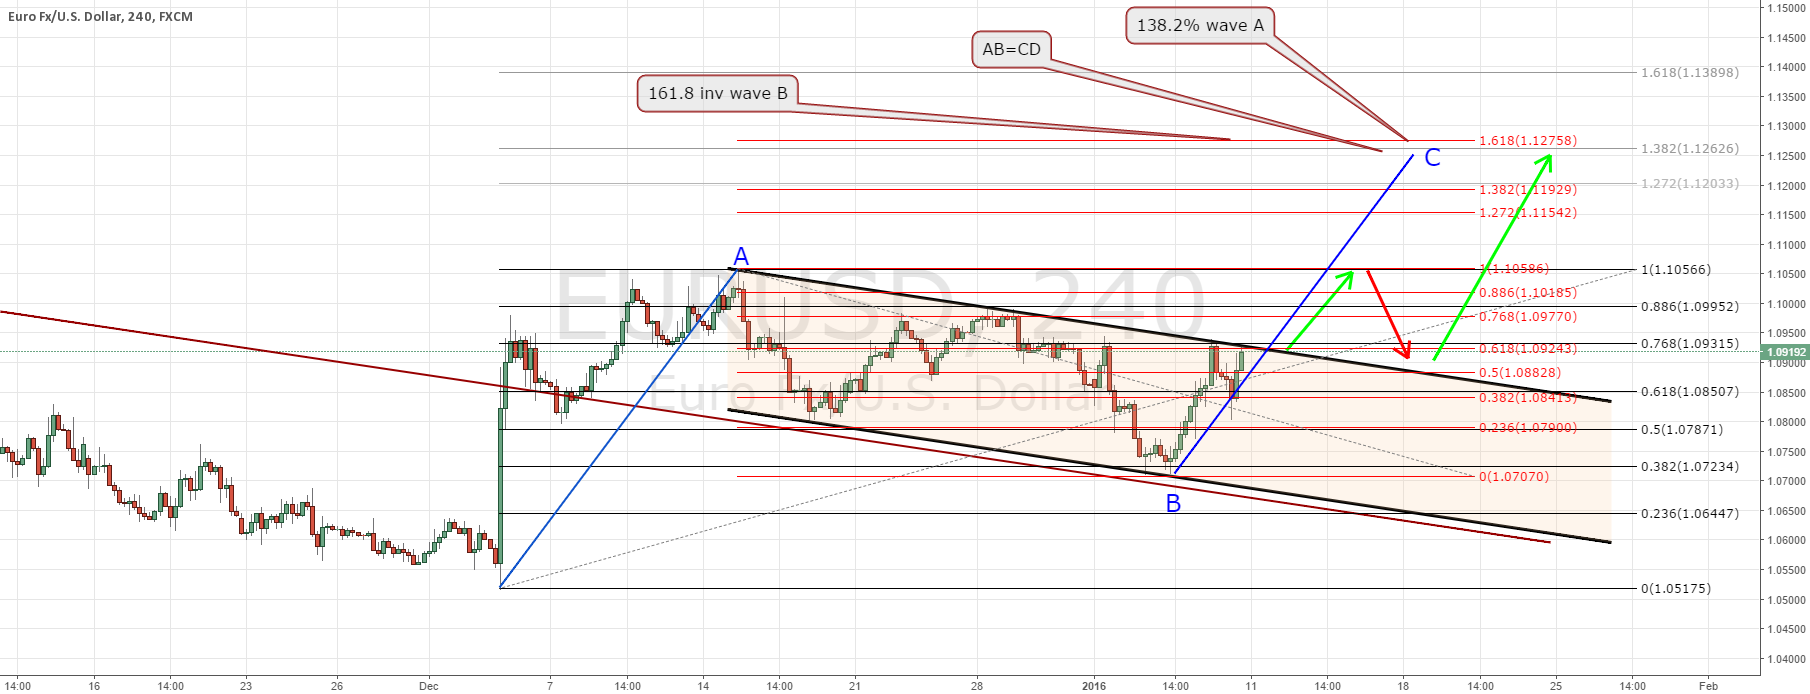 Update EURUSD trade plan